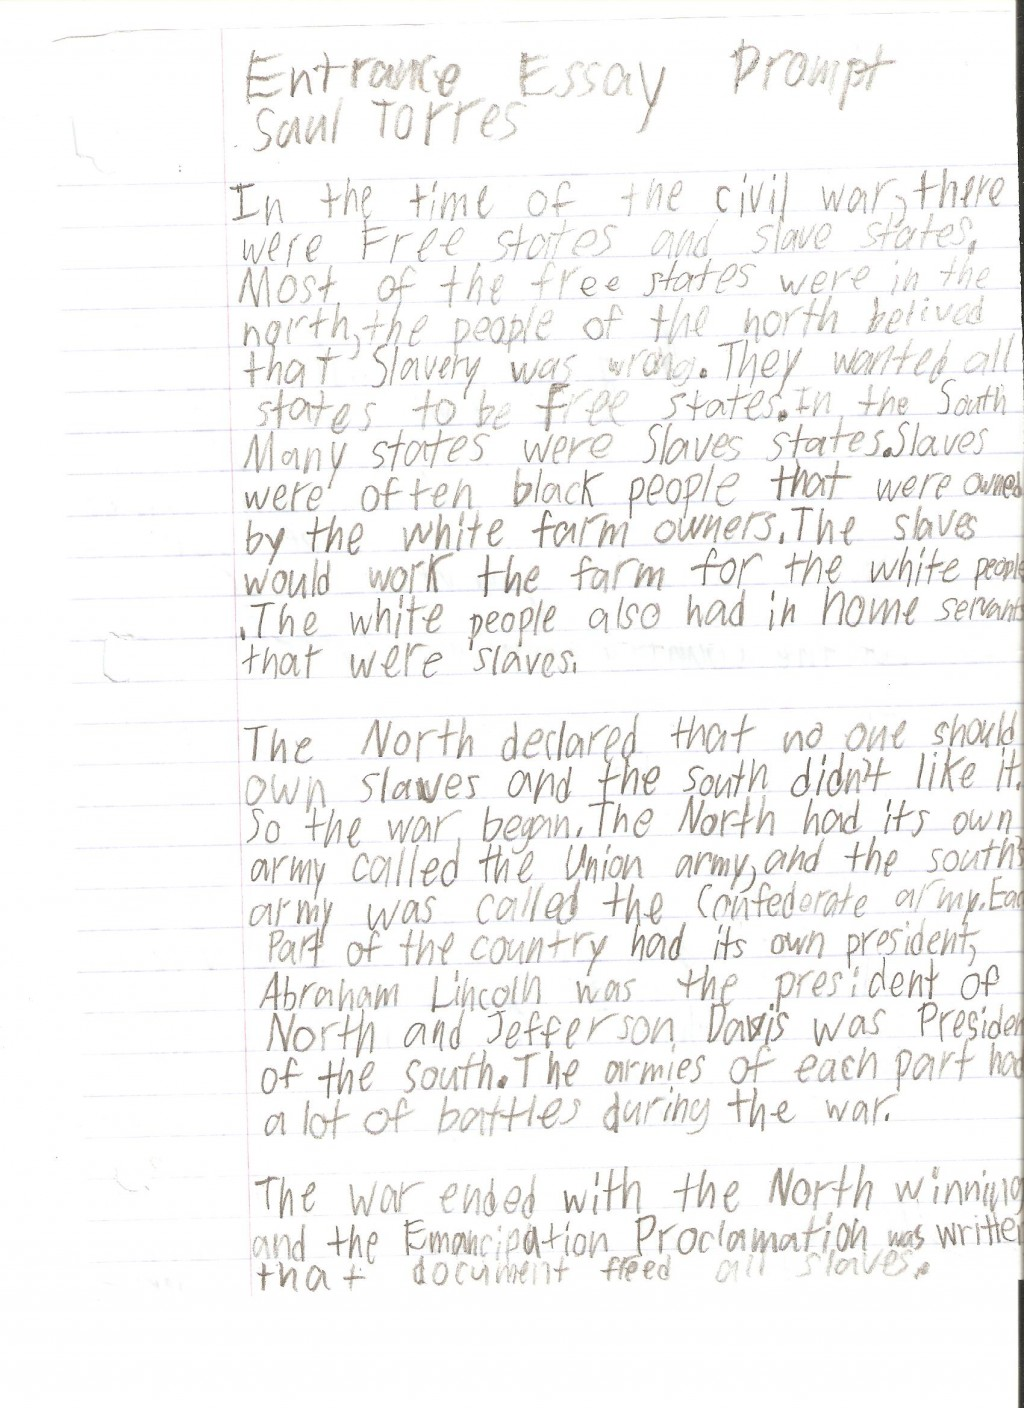 009 Saul Torres Essay Example 6th Grade Fantastic Examples Narrative Writing Literary Large